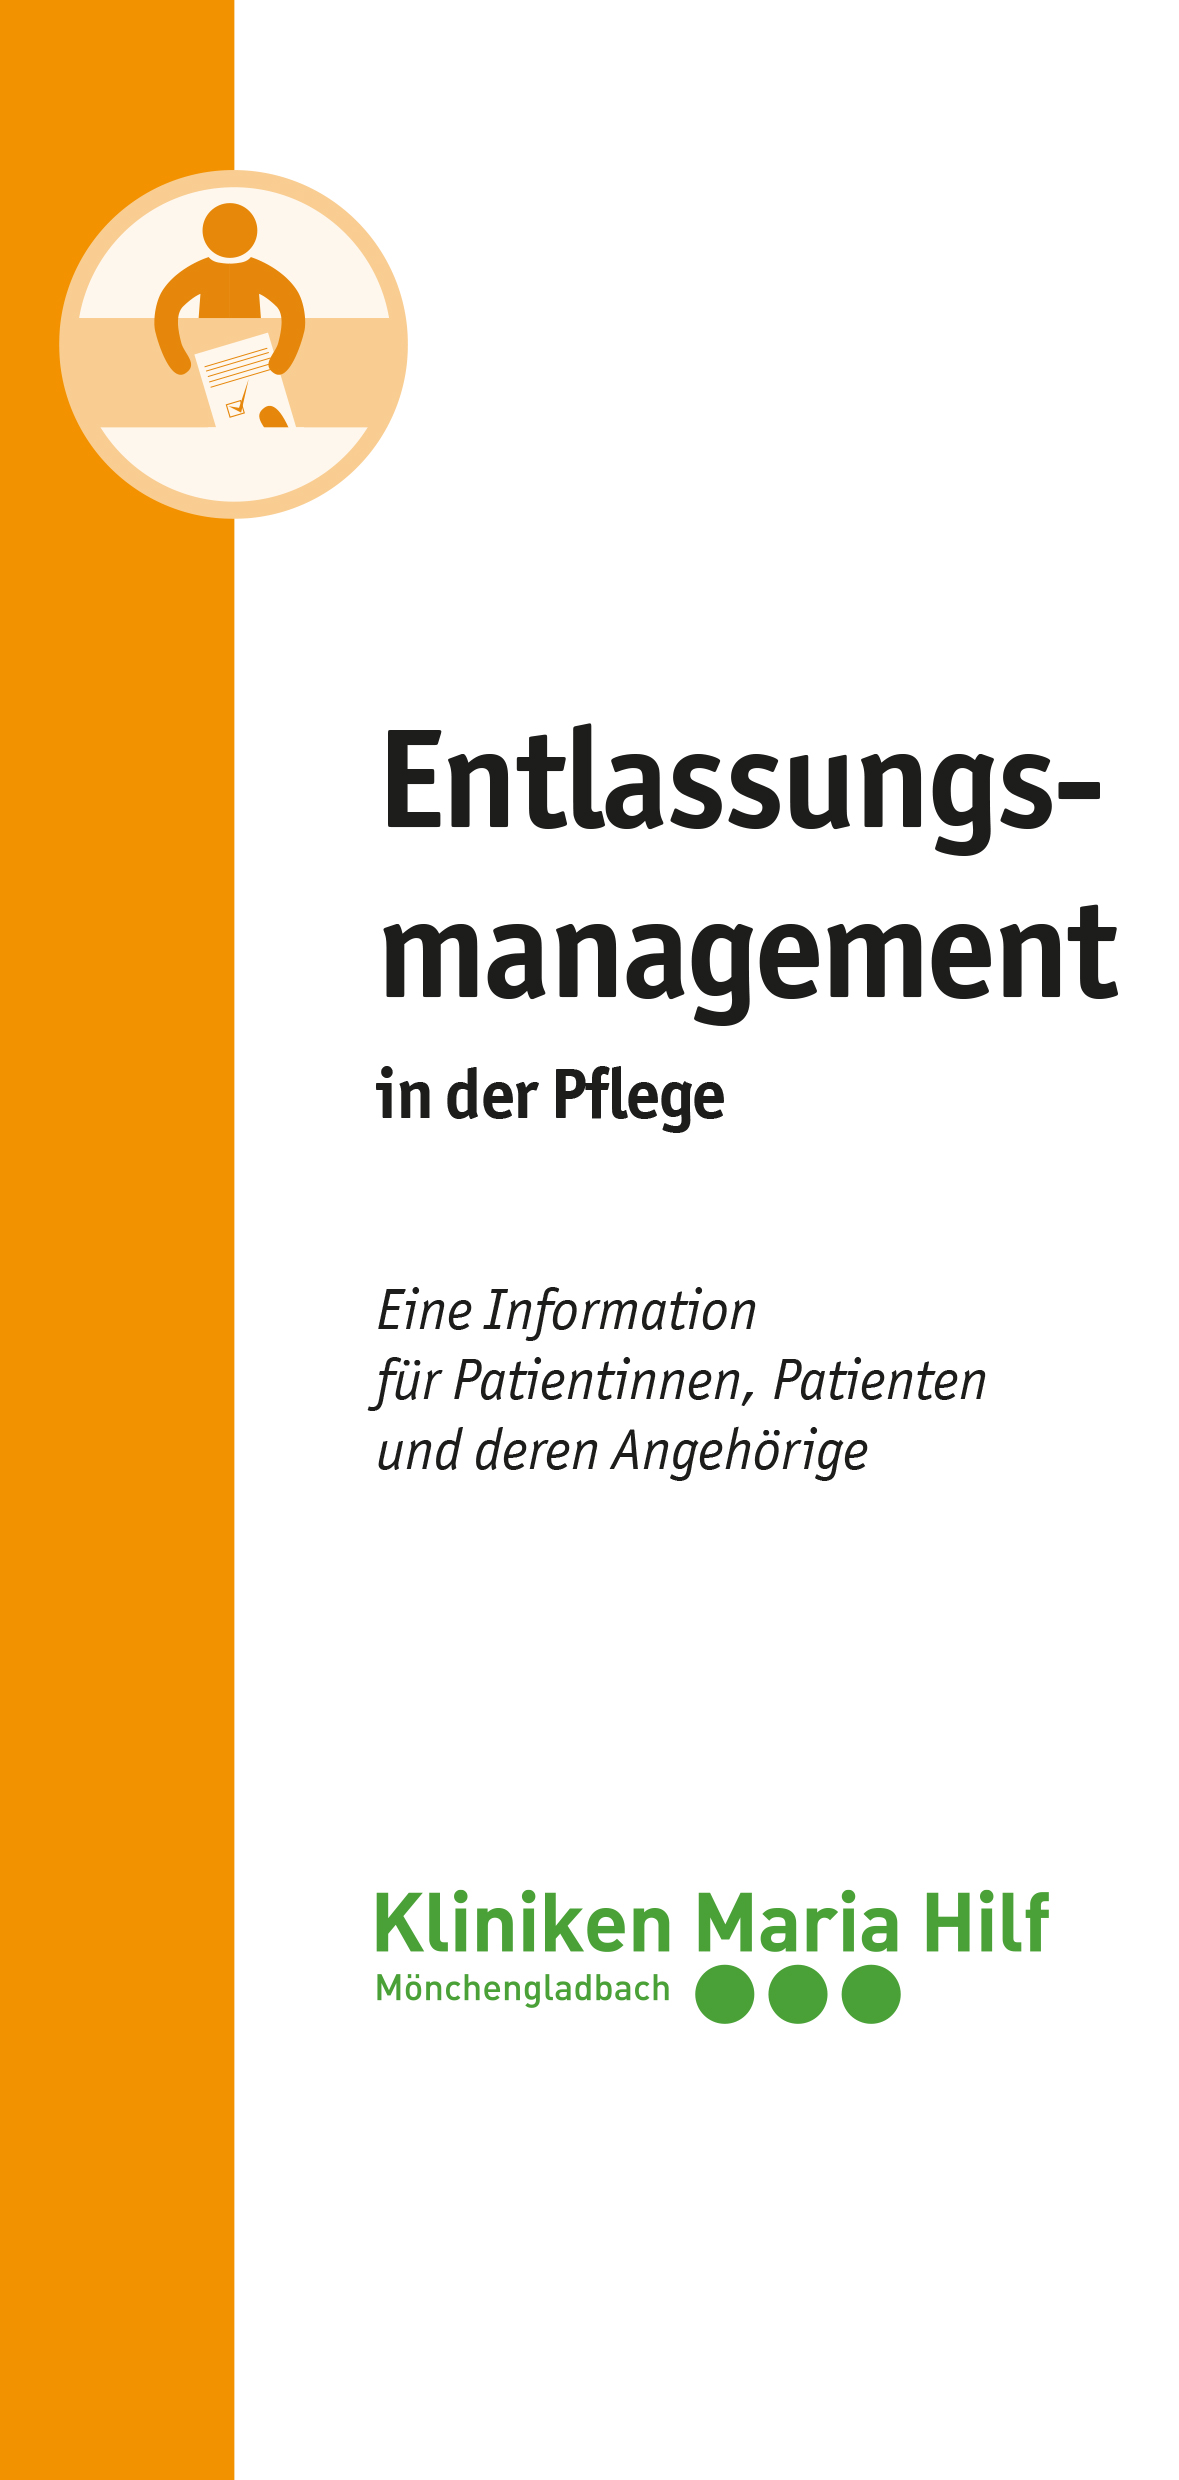 Flyer Entlassungsmanagement